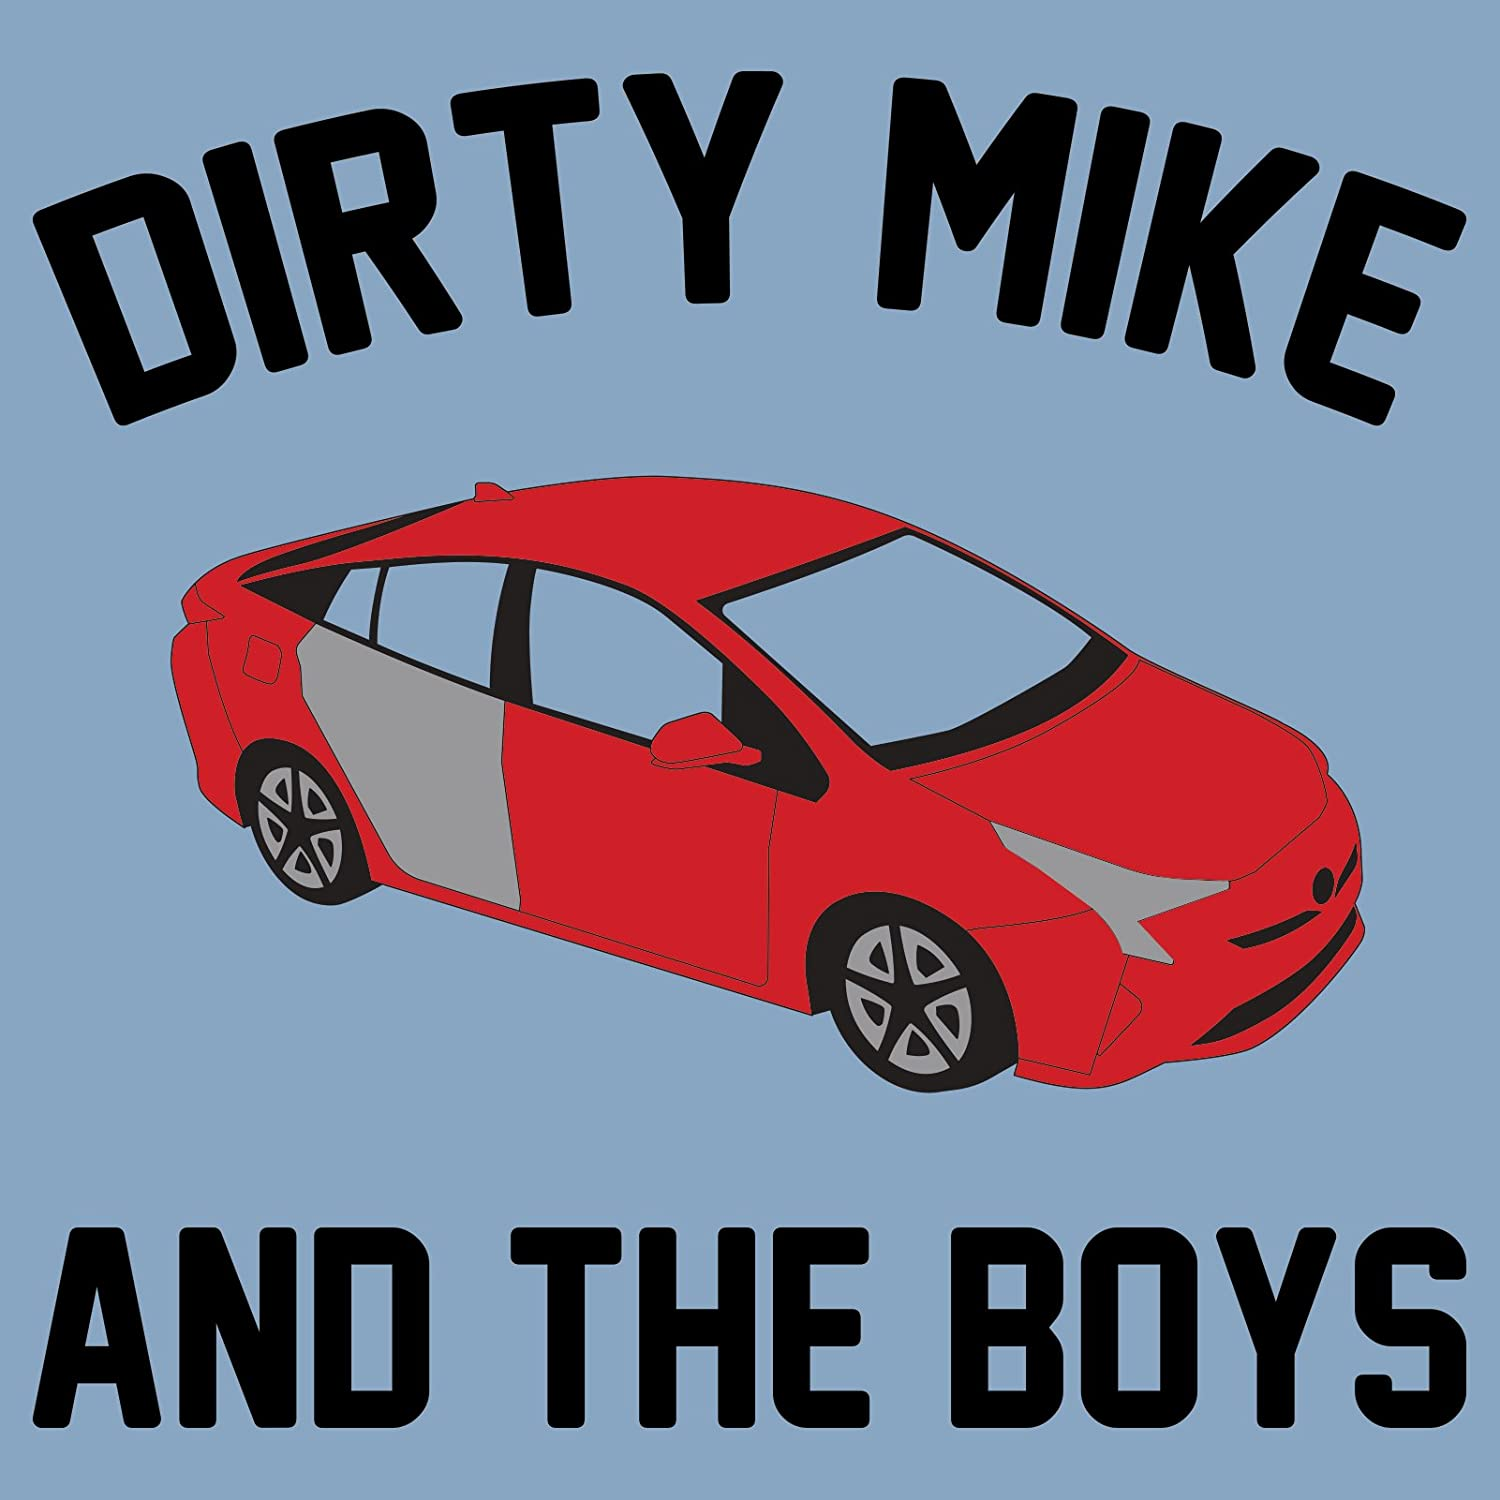 Amazon.com: UGP Campus Apparel Dirty Mike and The Boys - Other Guys ...